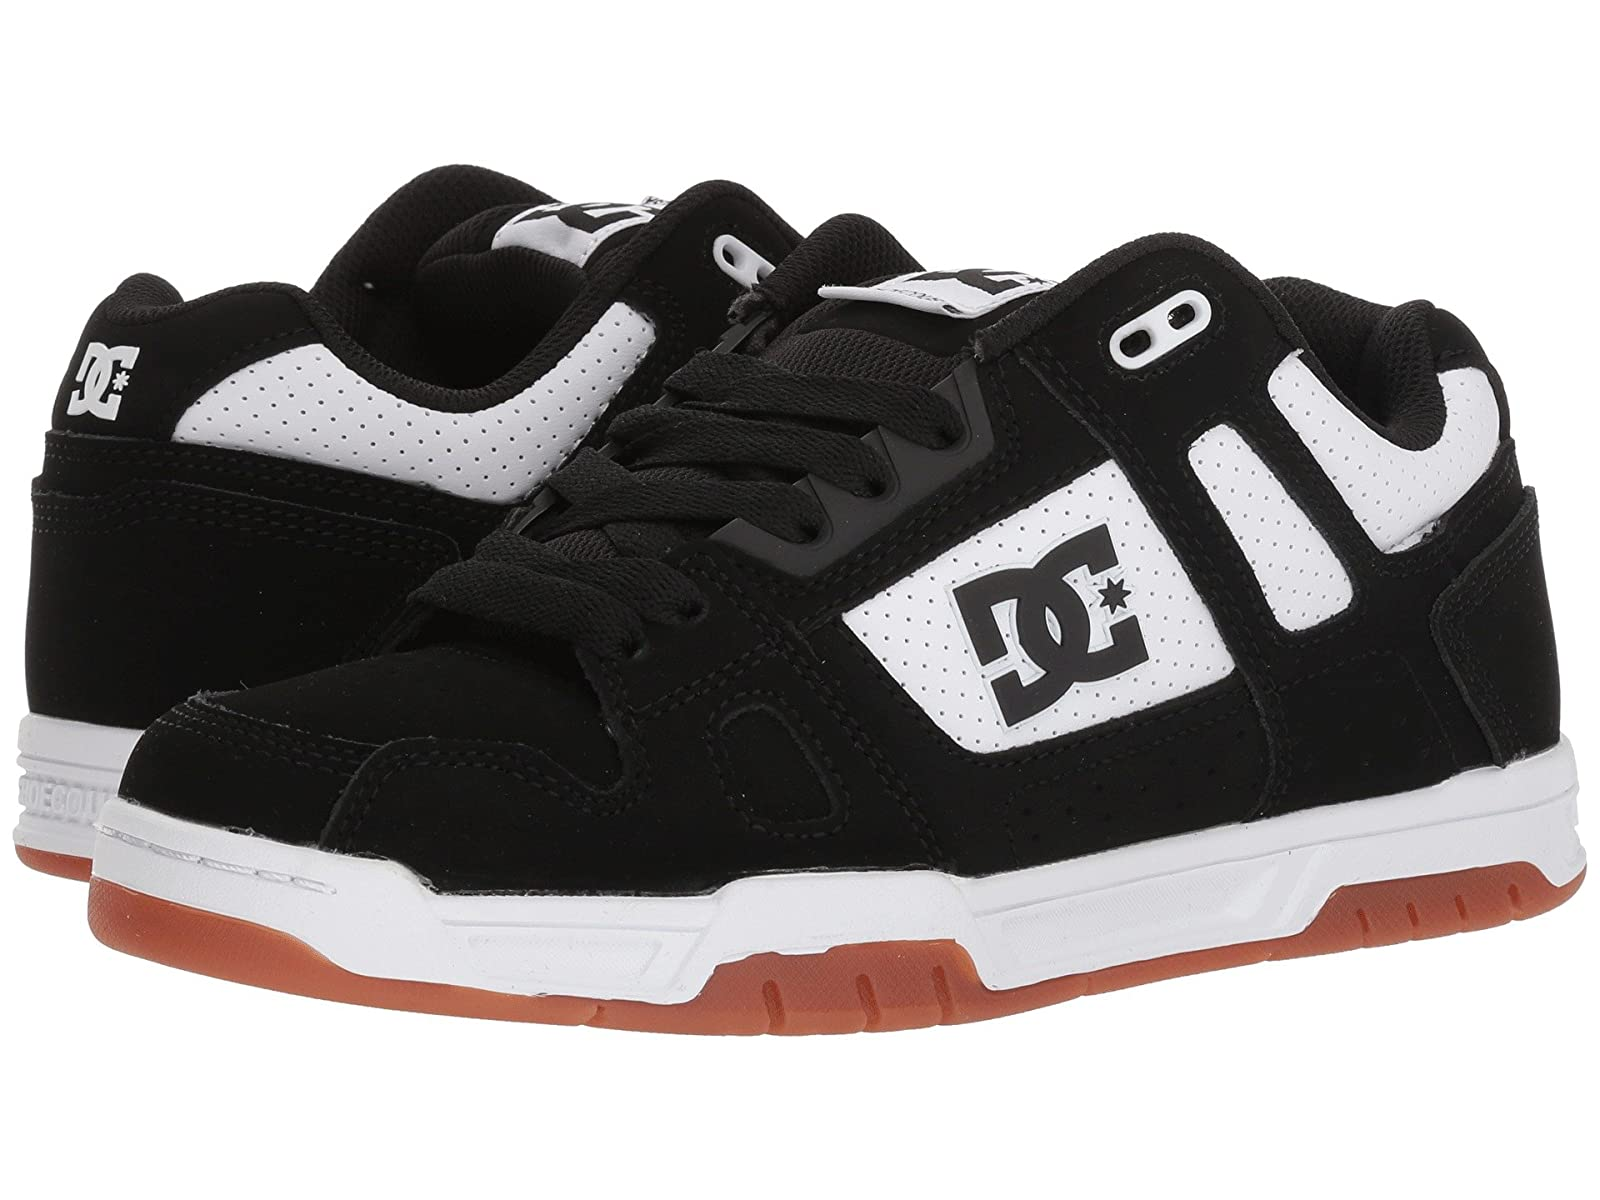 DC StagAtmospheric grades have affordable shoes